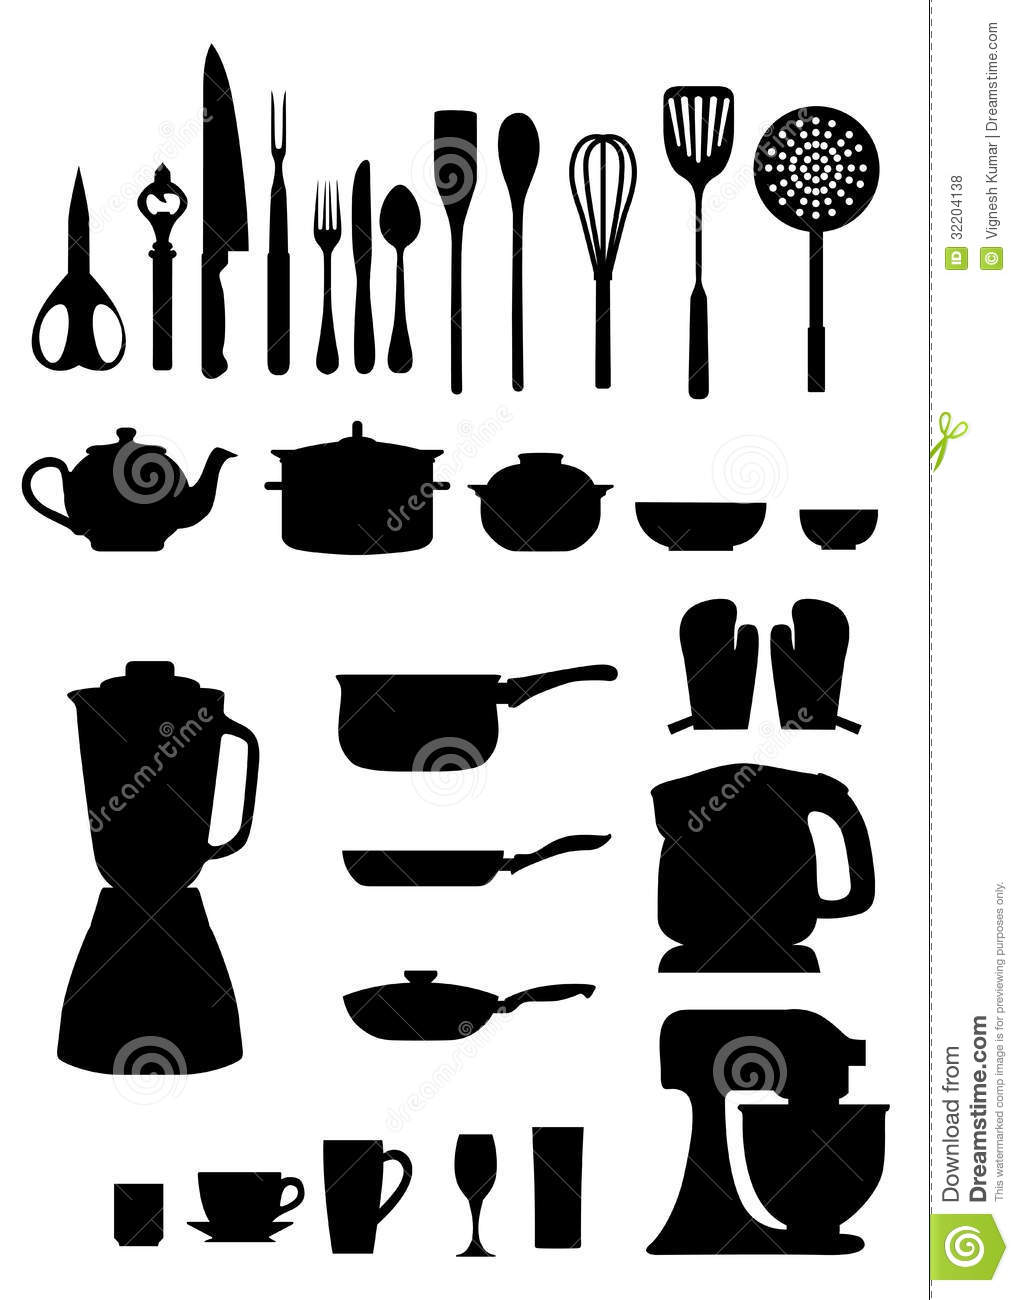 Kitchen silhouettes stock vector. Image of food, group ...